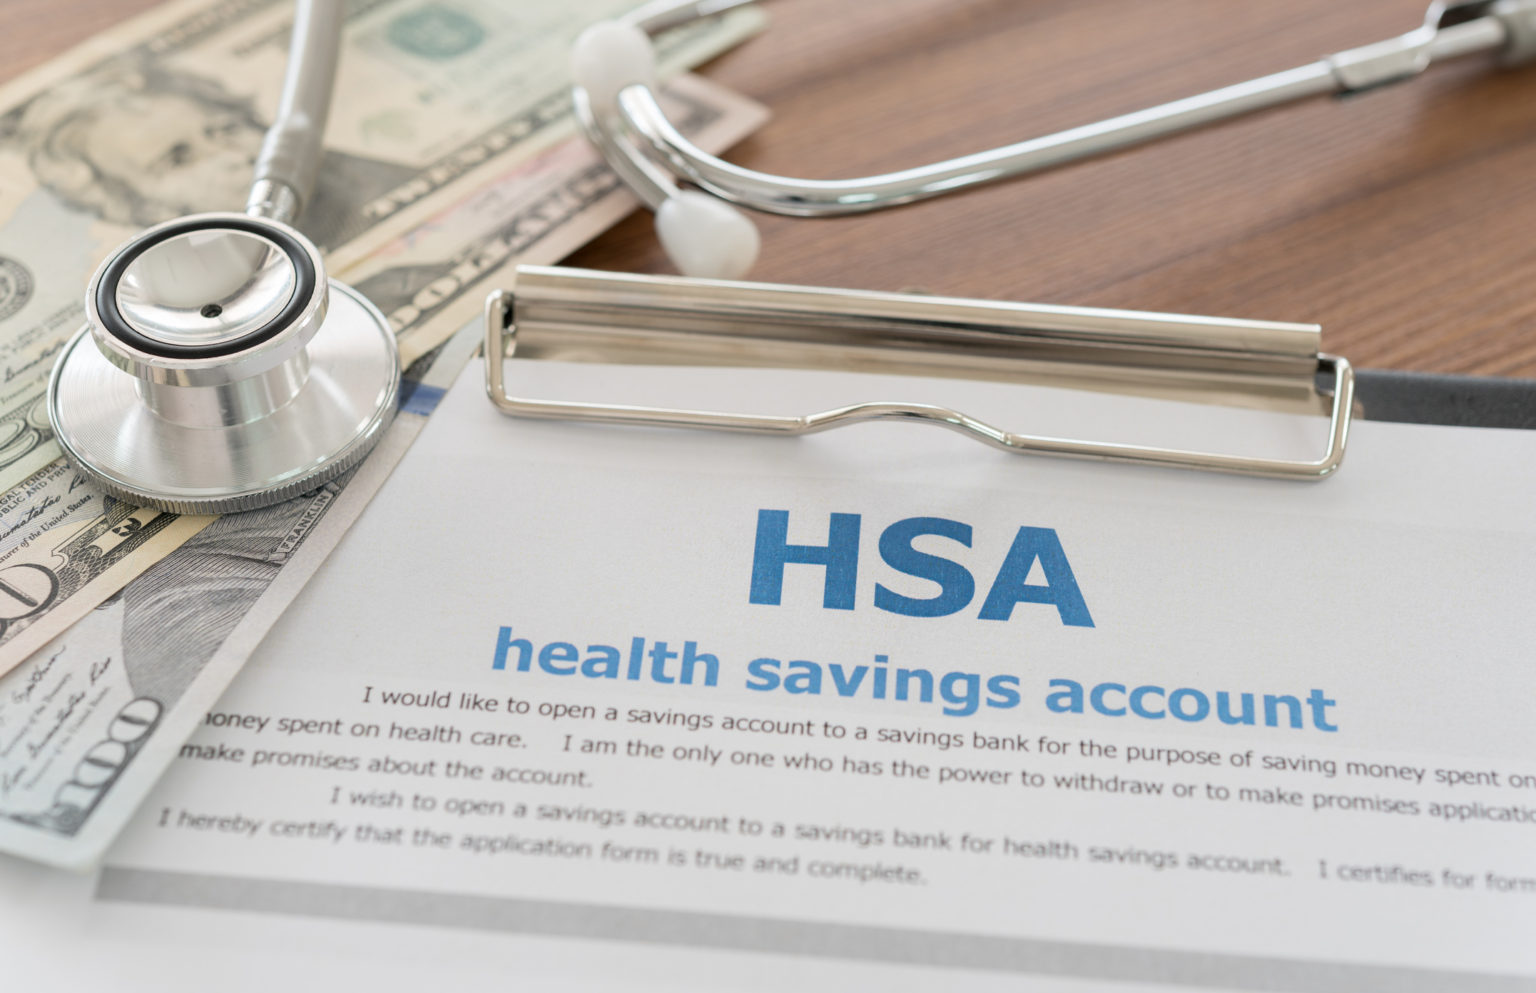 Health Savings Account (HSA), The Super IRA!